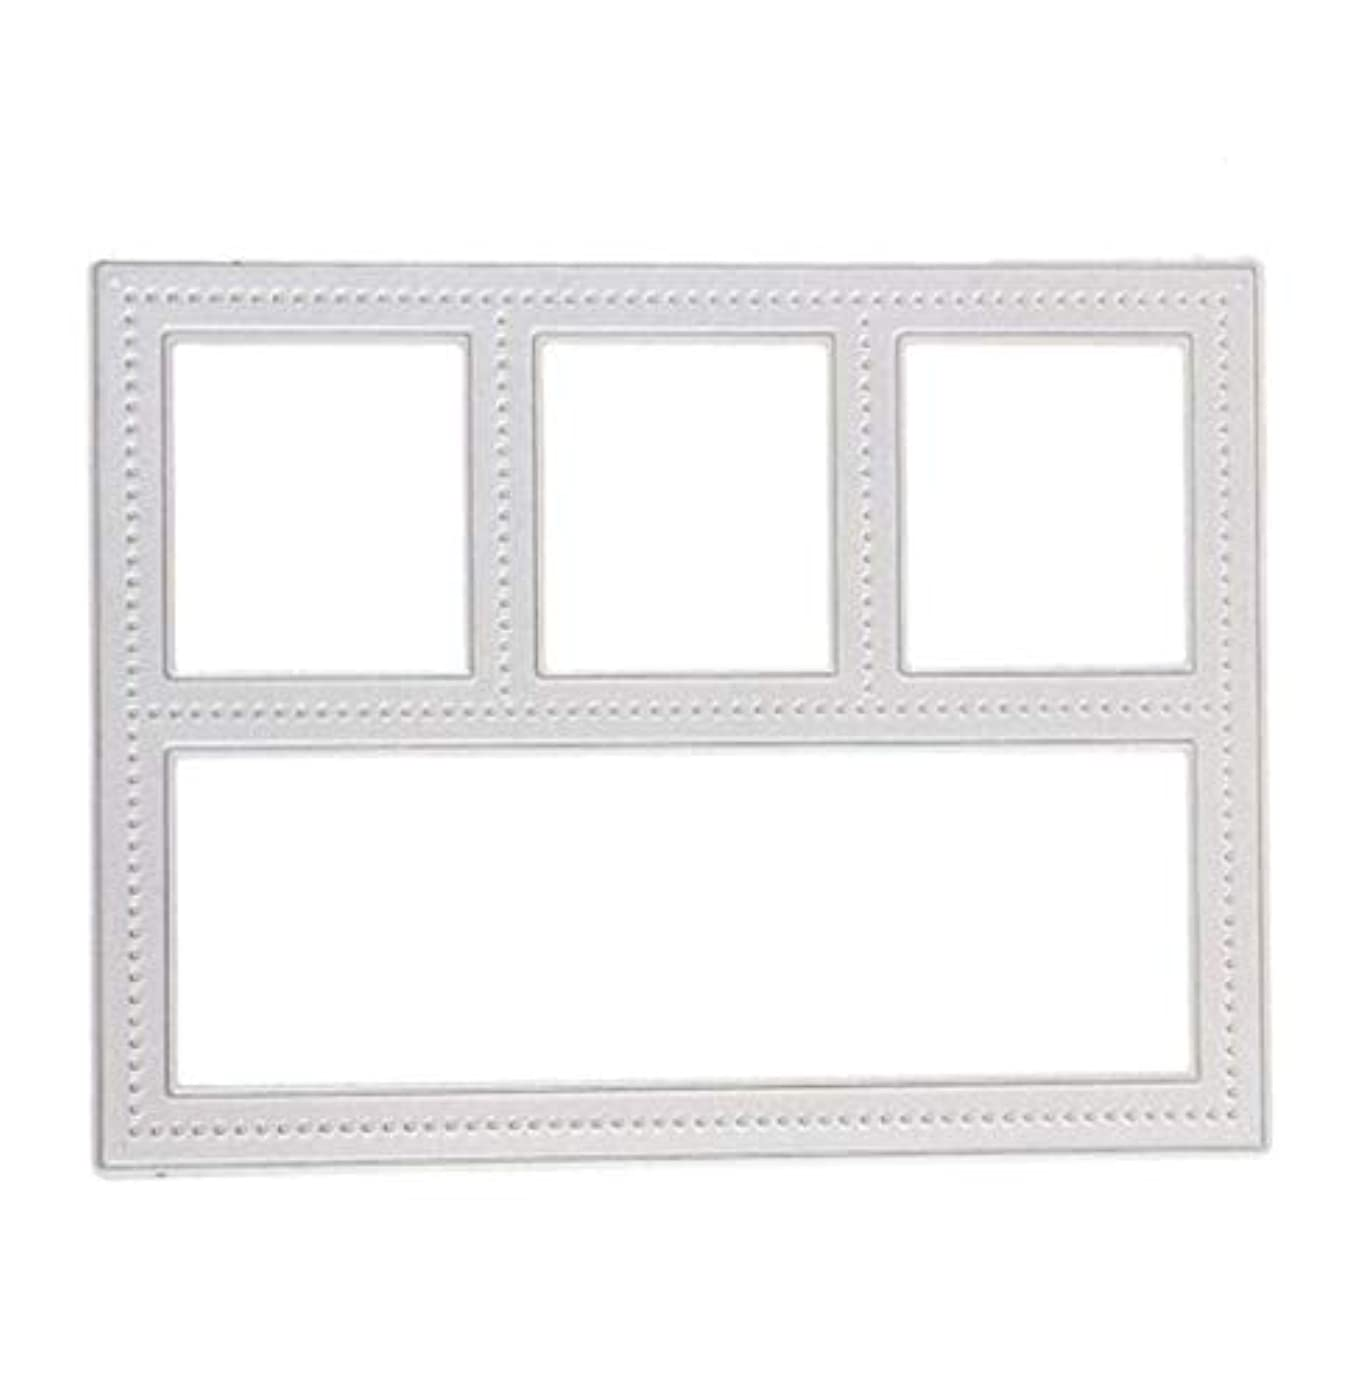 Mvchif Cutting Dies Metal Stencils Scrapbooking Tool DIY Craft Carbon Steel Embossing Template for Paper Card Making (Rectangle Window)